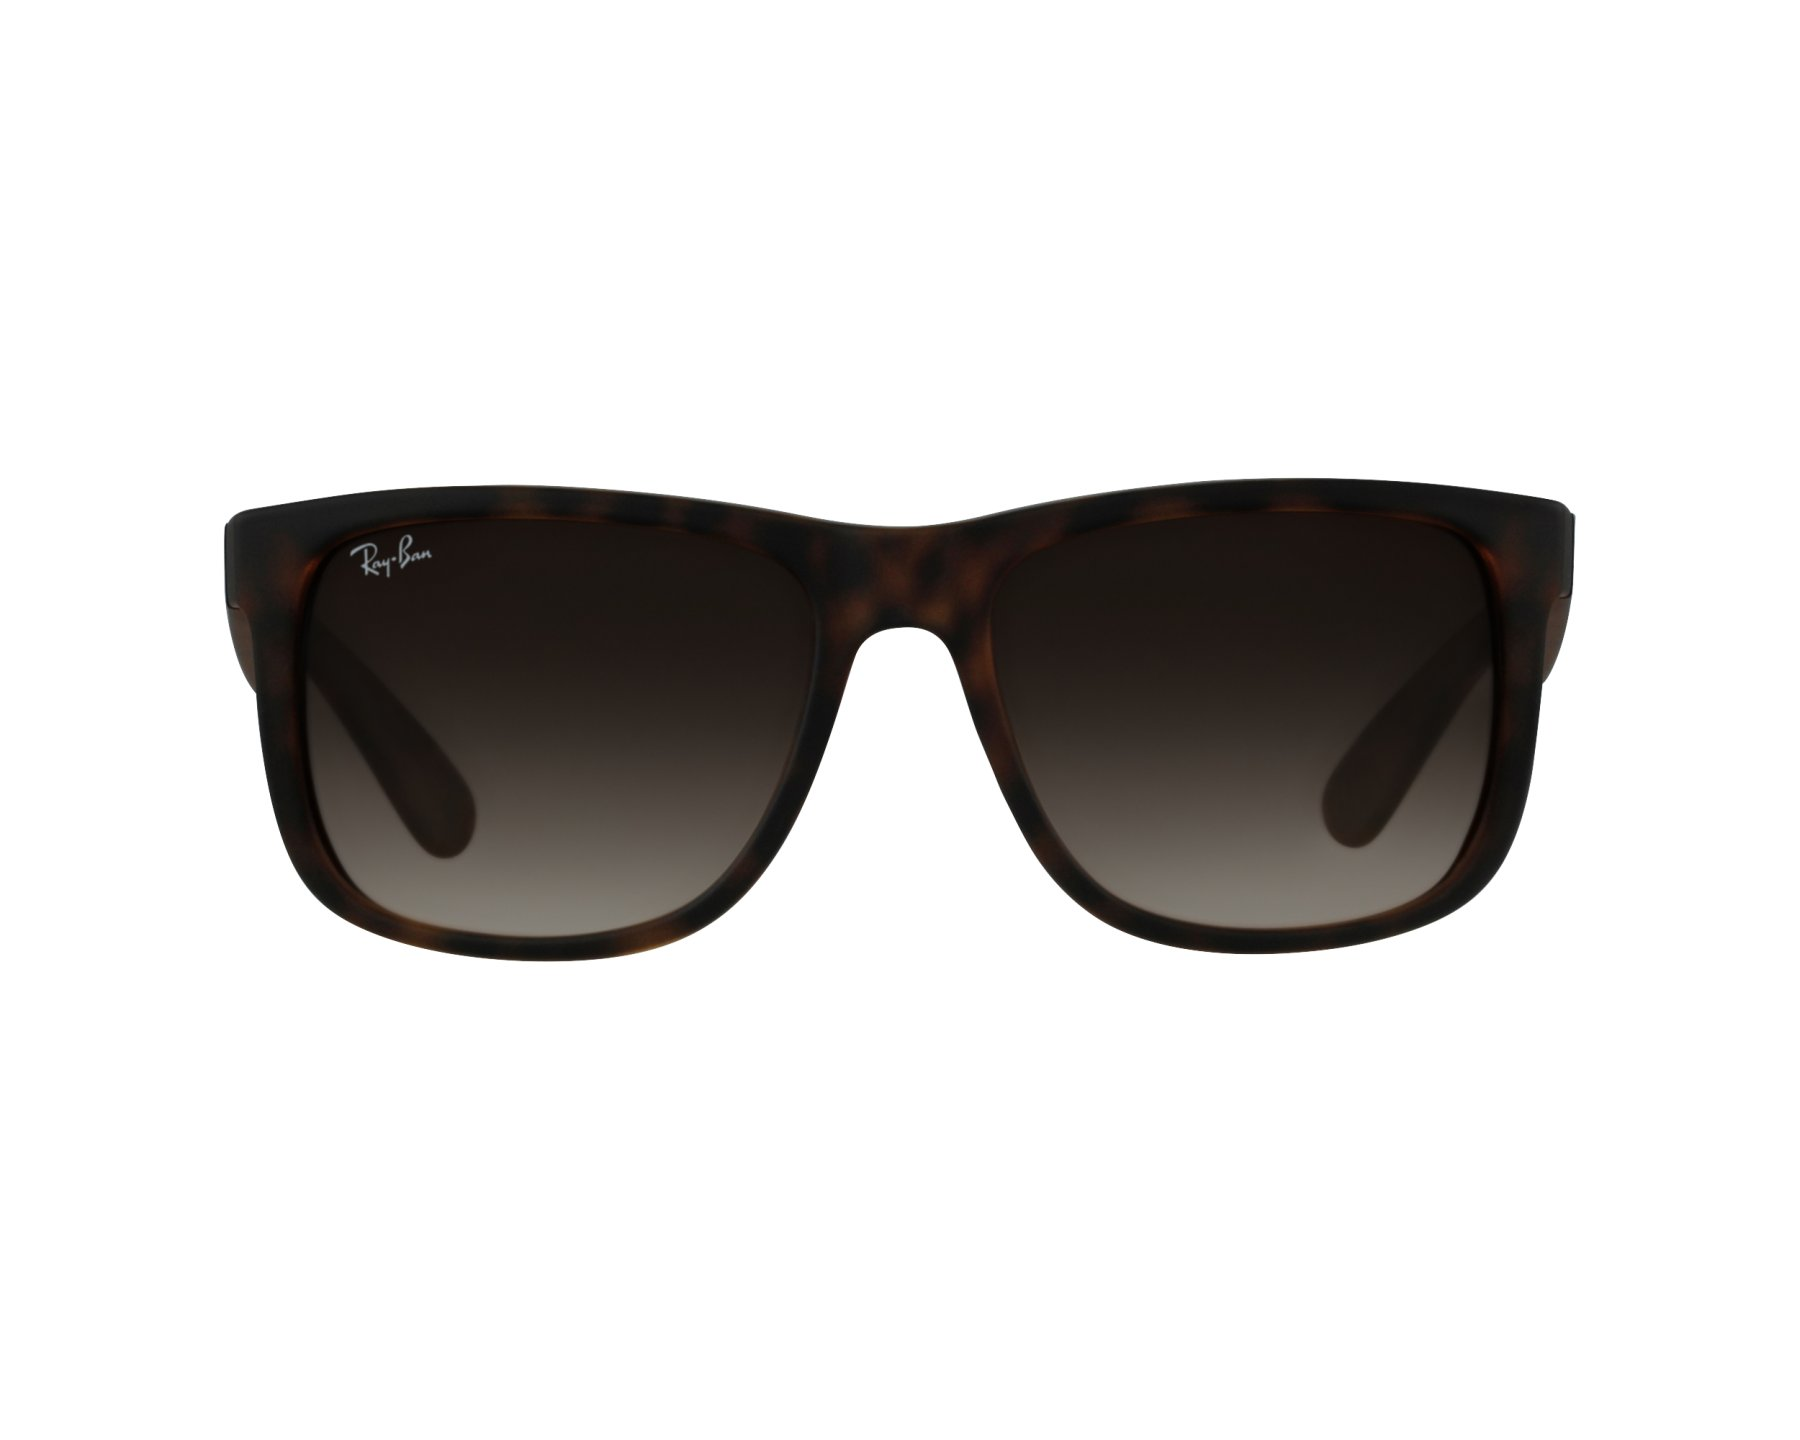 ddd7a5b45 Lentes Ray Ban Rb4165 « One More Soul